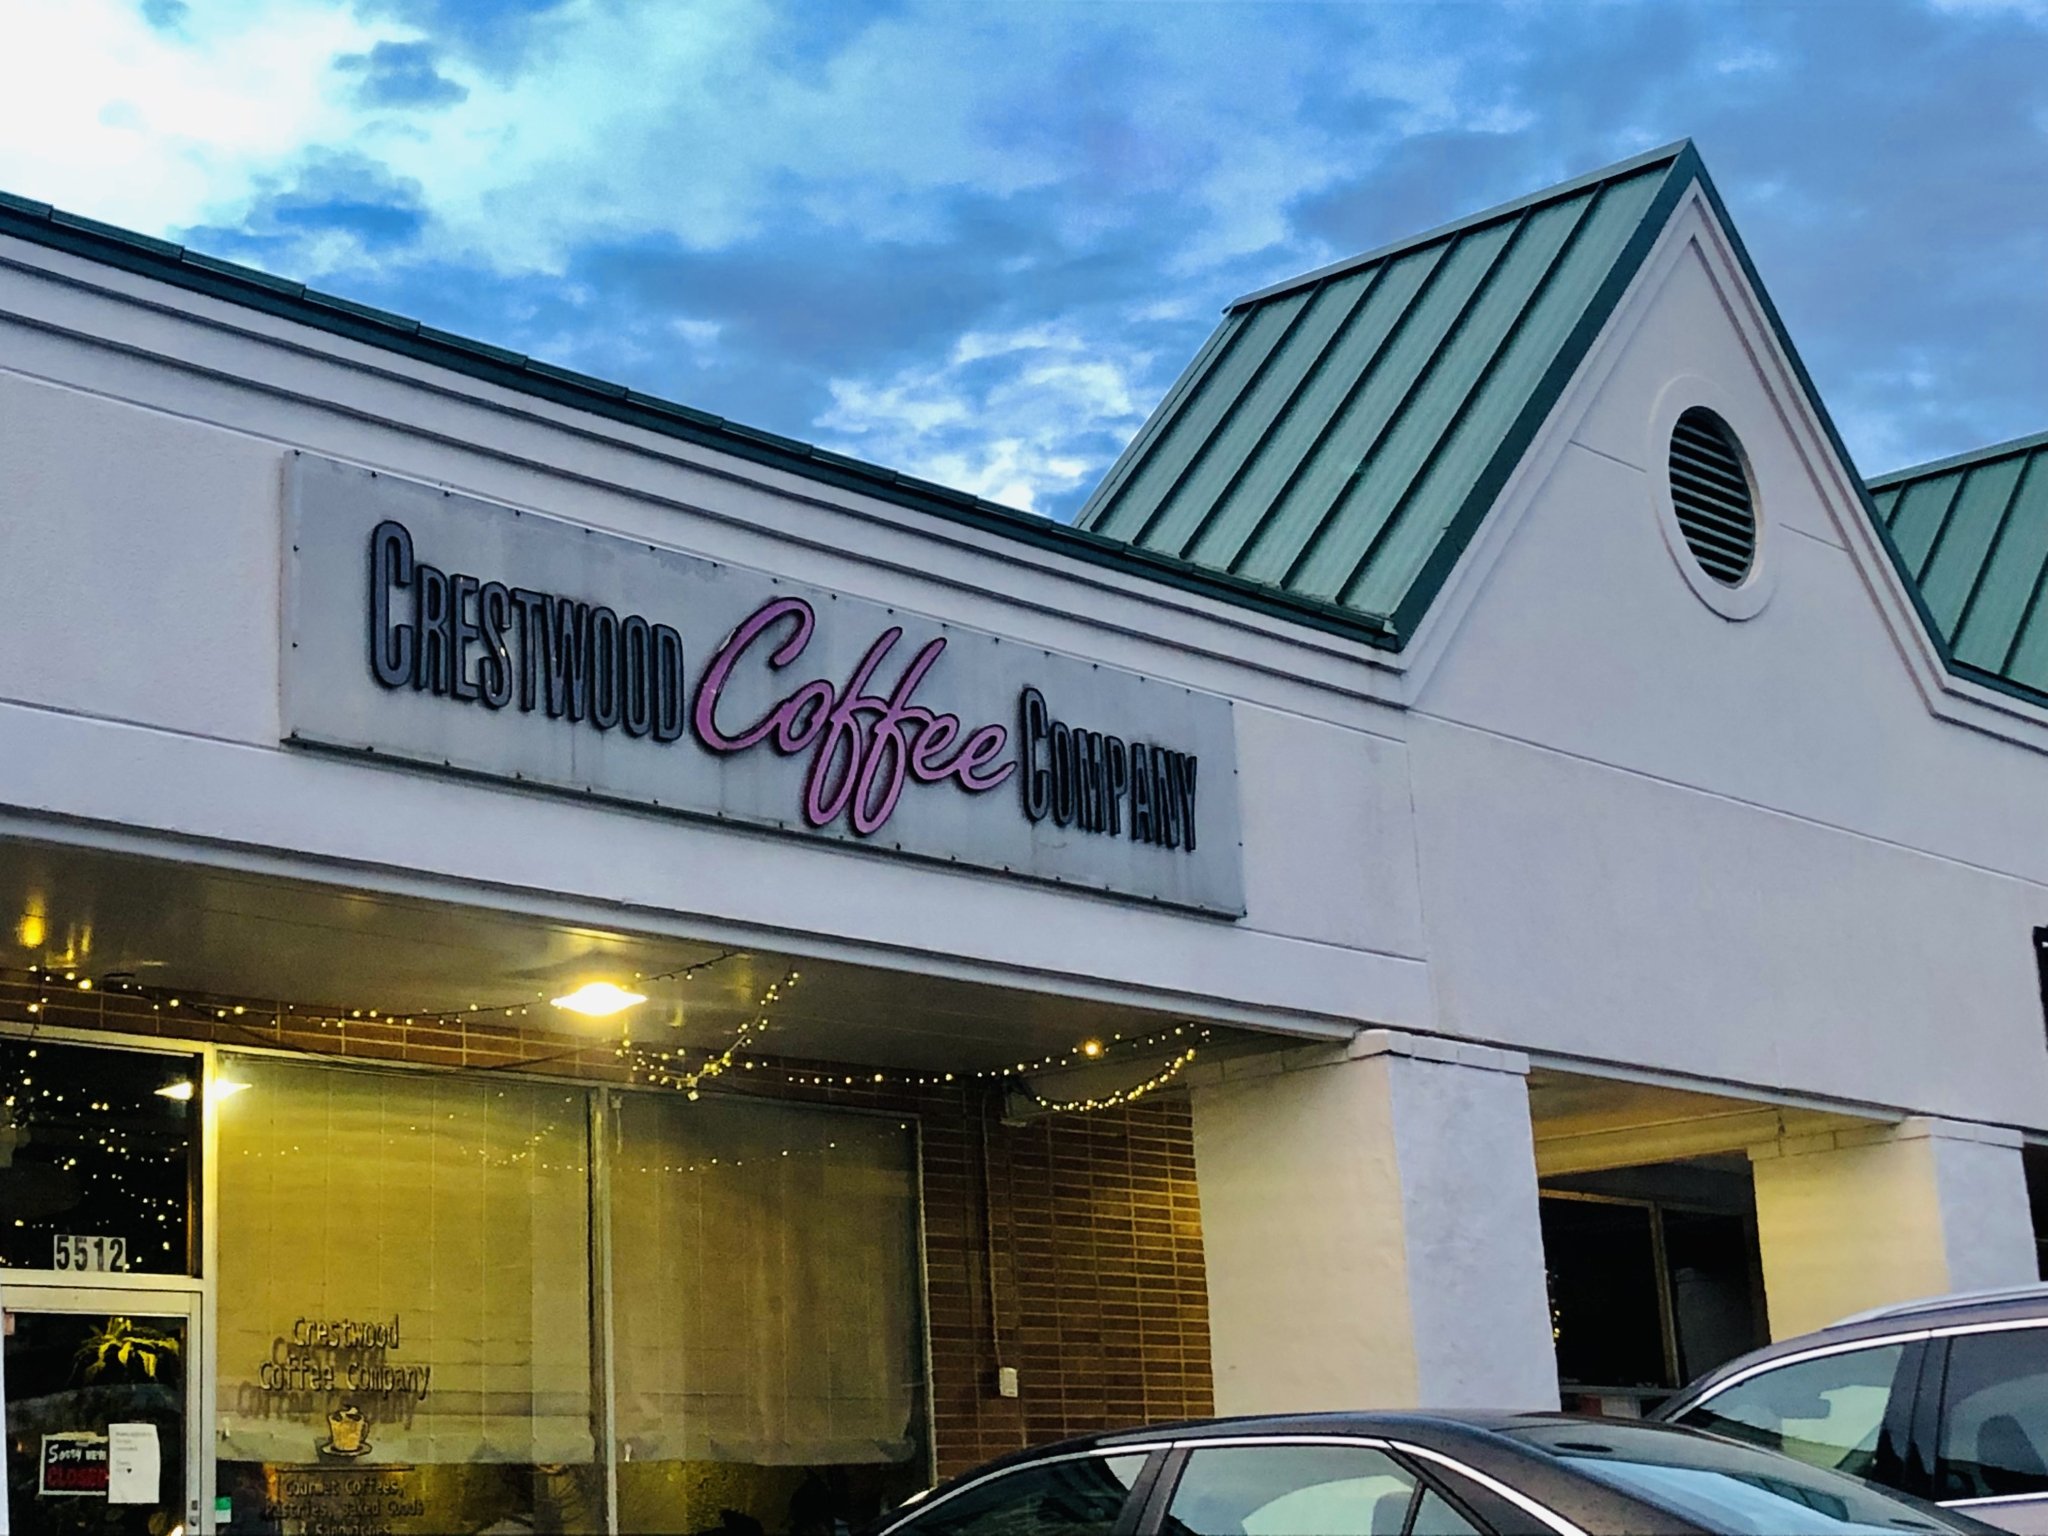 Crestwood Coffee, Eugene's Hot Chicken earn 95+ food service scores